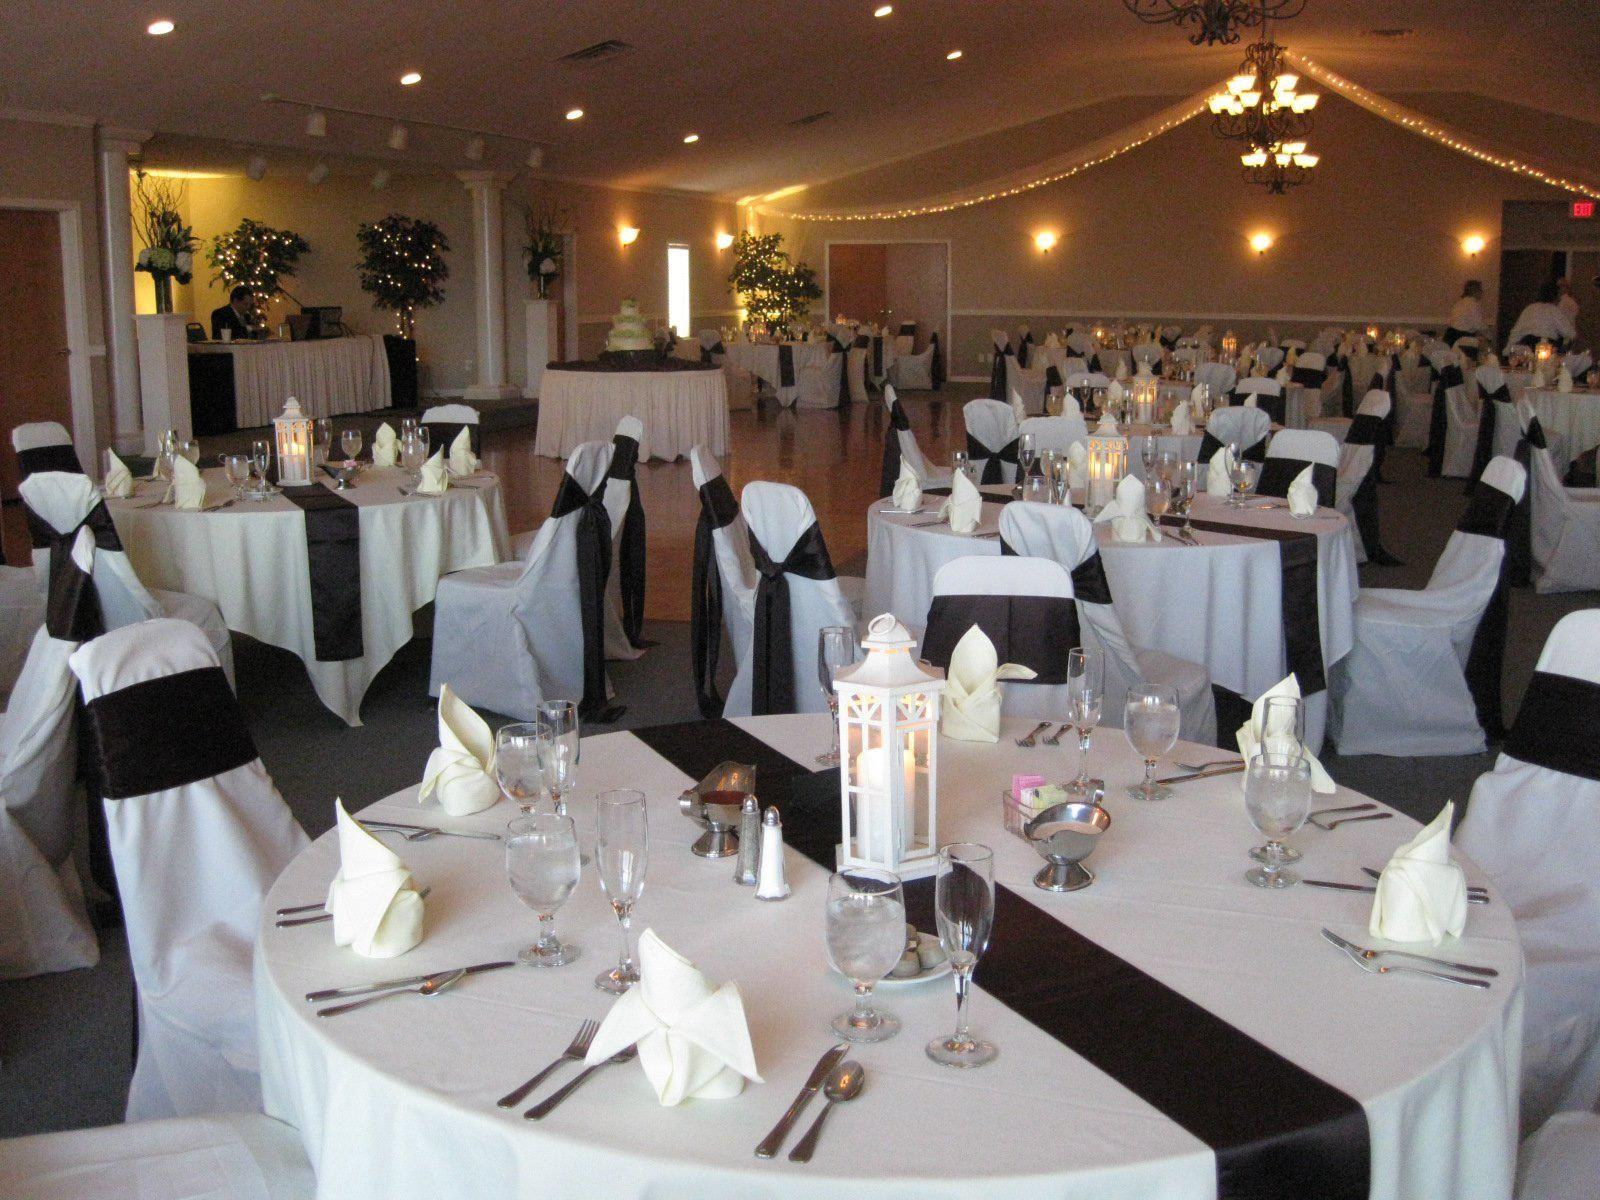 White Table Linens with Black Satin Table Runner White Chair